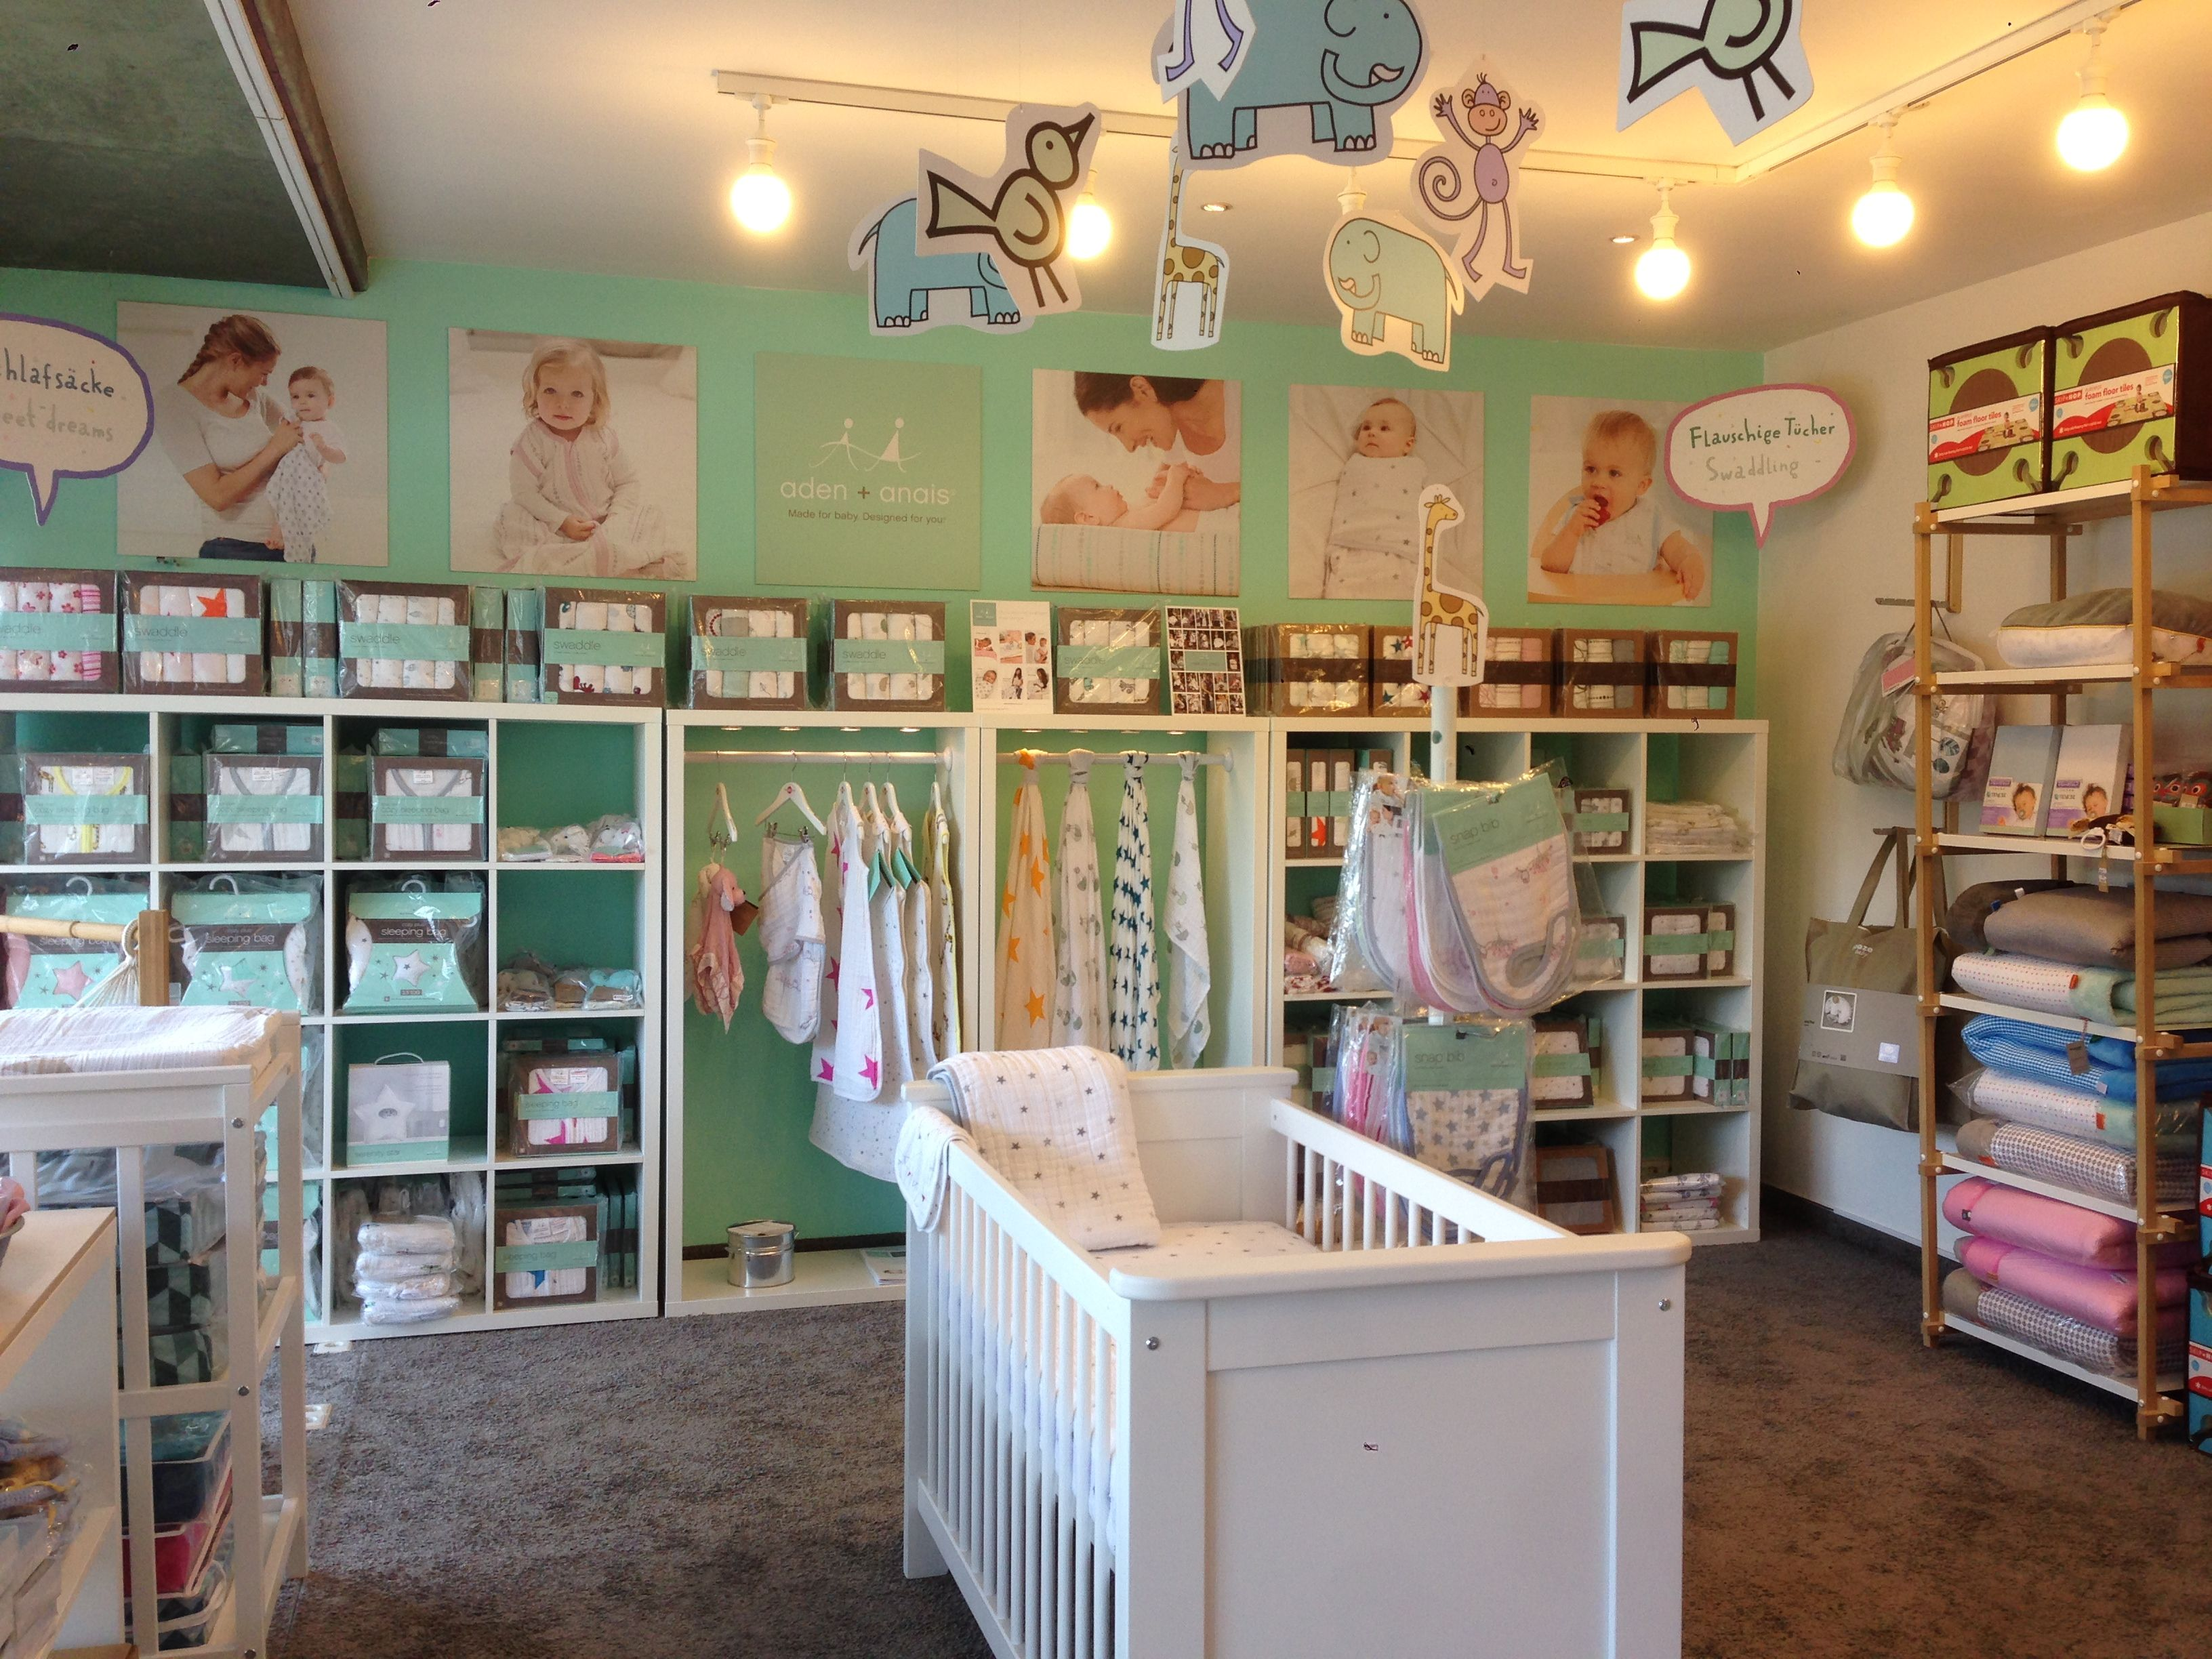 drei kse hoch have just launched a fantastic aden anais pop up shop at their store in lrrach southwest germany we think it looks great